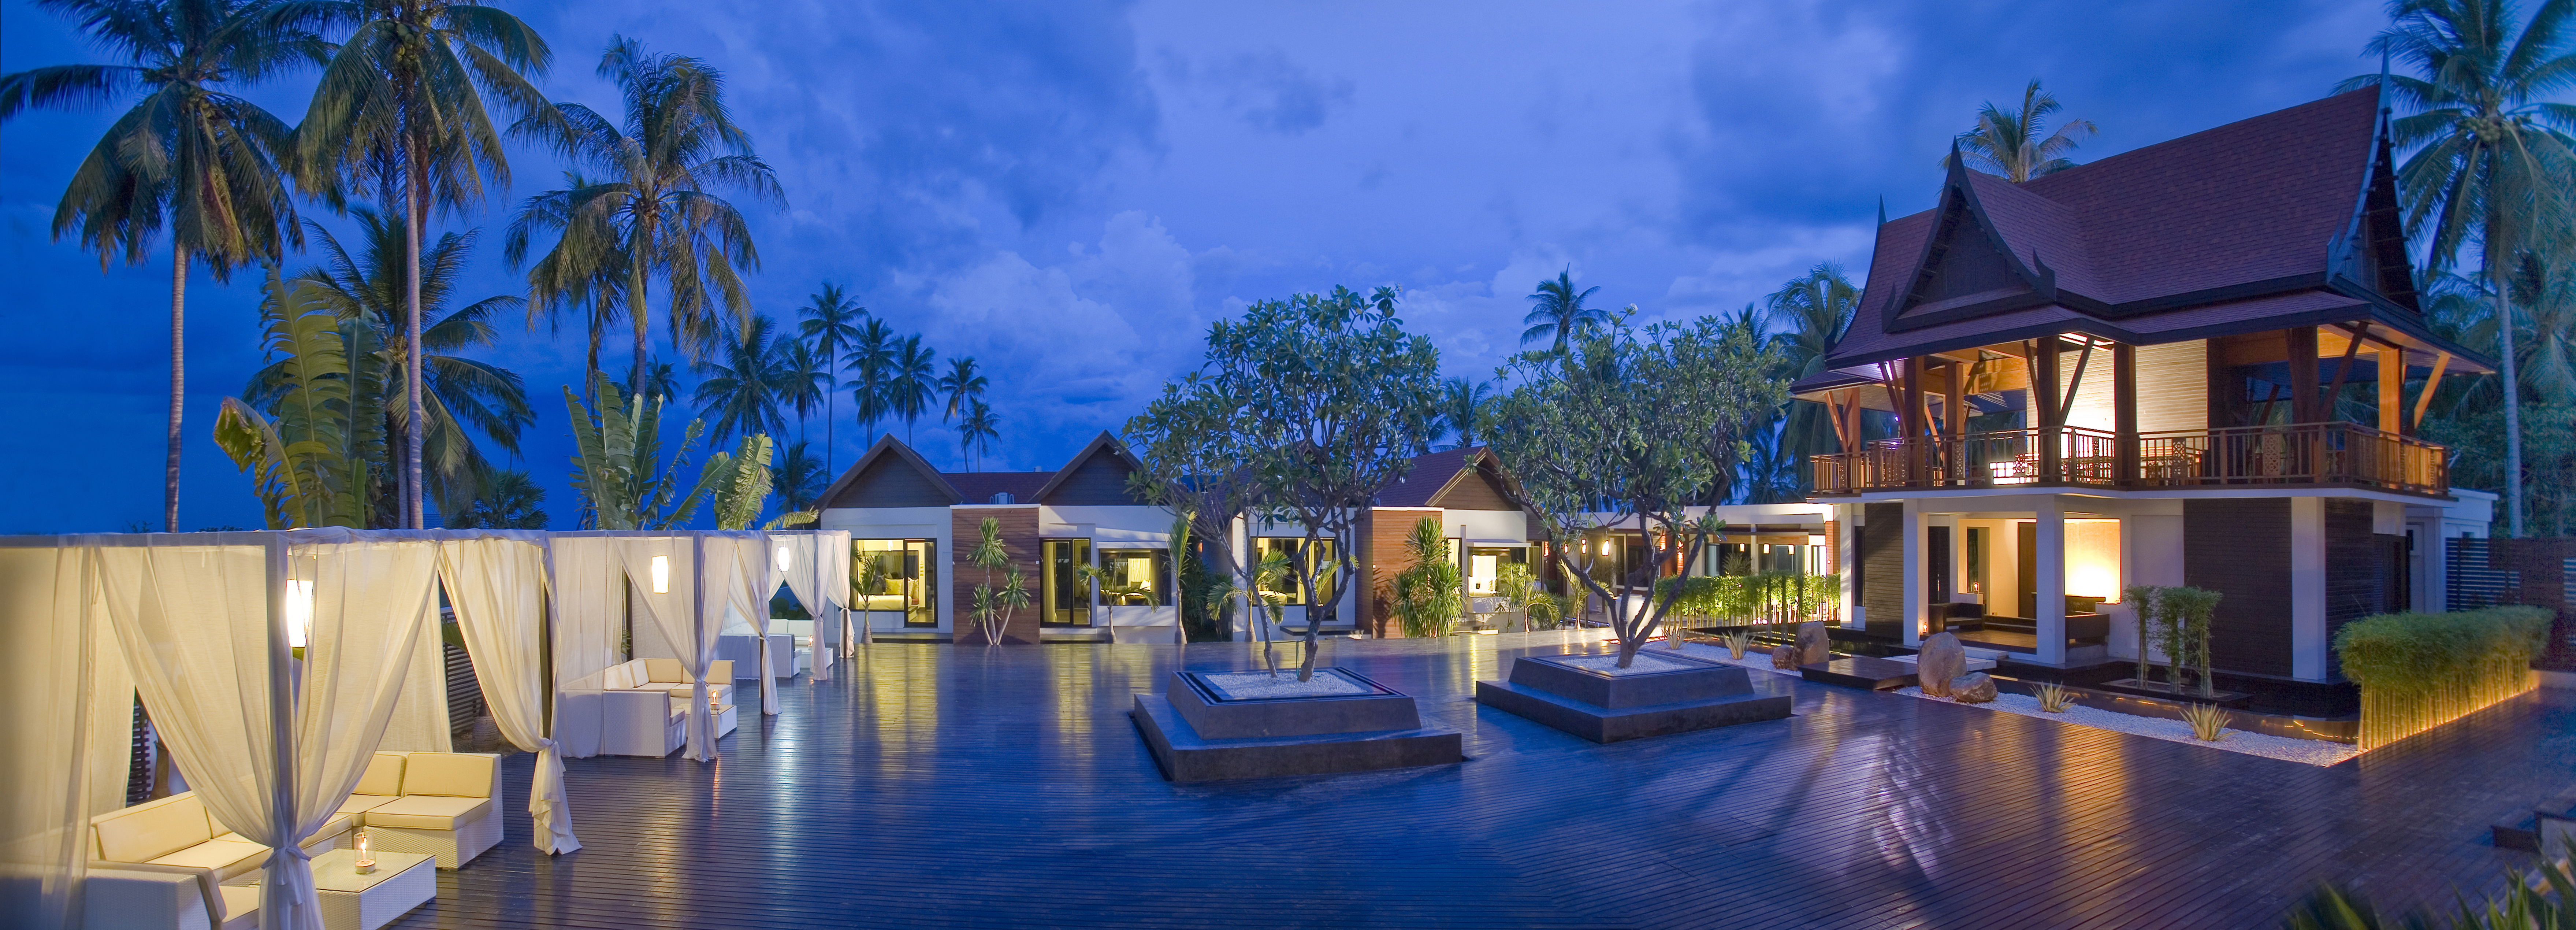 aava-resort-spa-garden-night